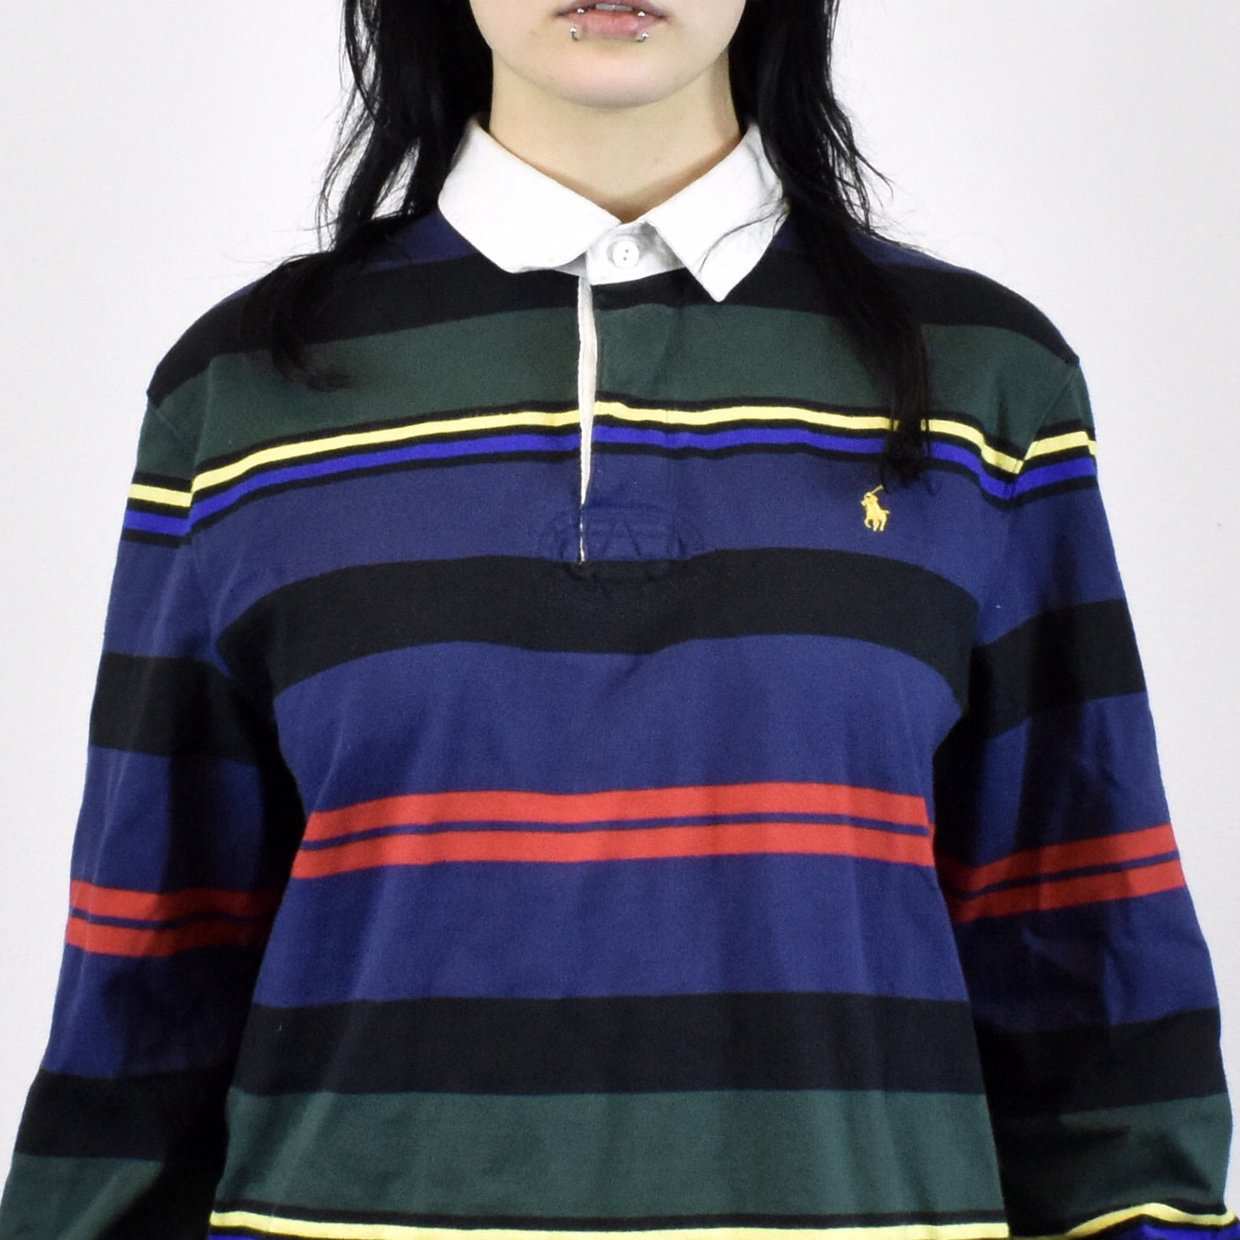 35c6559b Unisex Vintage Ralph Lauren long sleeved polo shirt in black, blue, green,  red size M